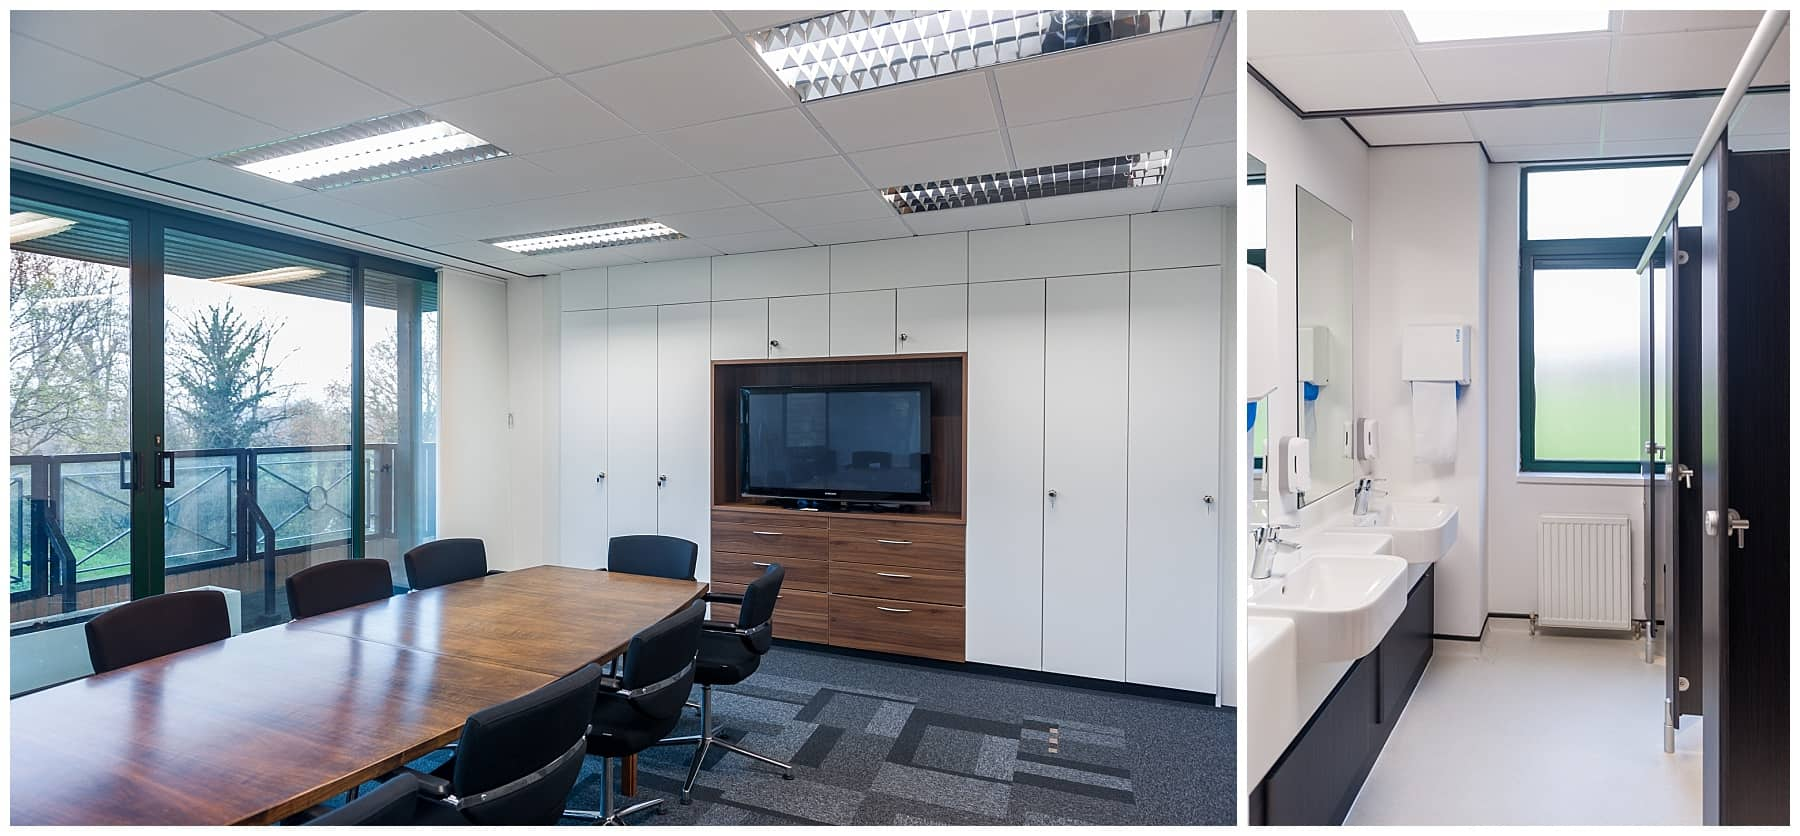 wooden boardroom table with black chairs and TV mounted in storage wall